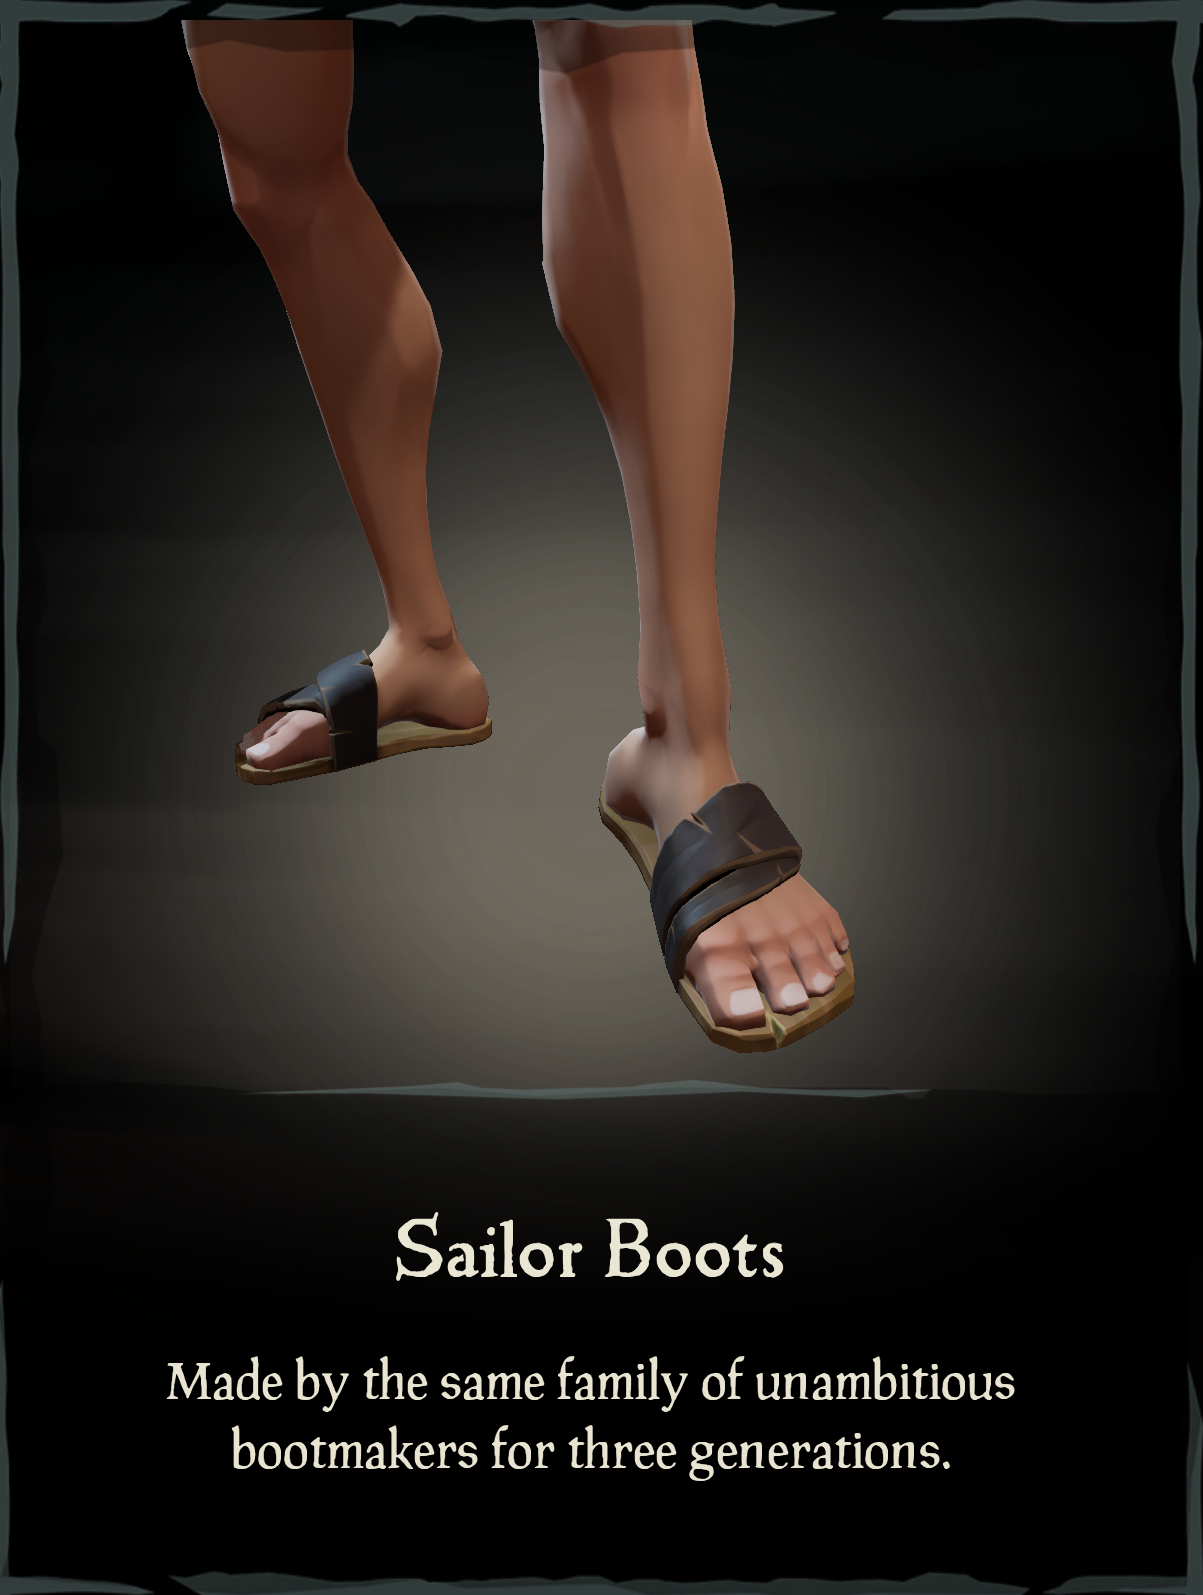 097f1621a44 Boots - Sea of Thieves Wiki